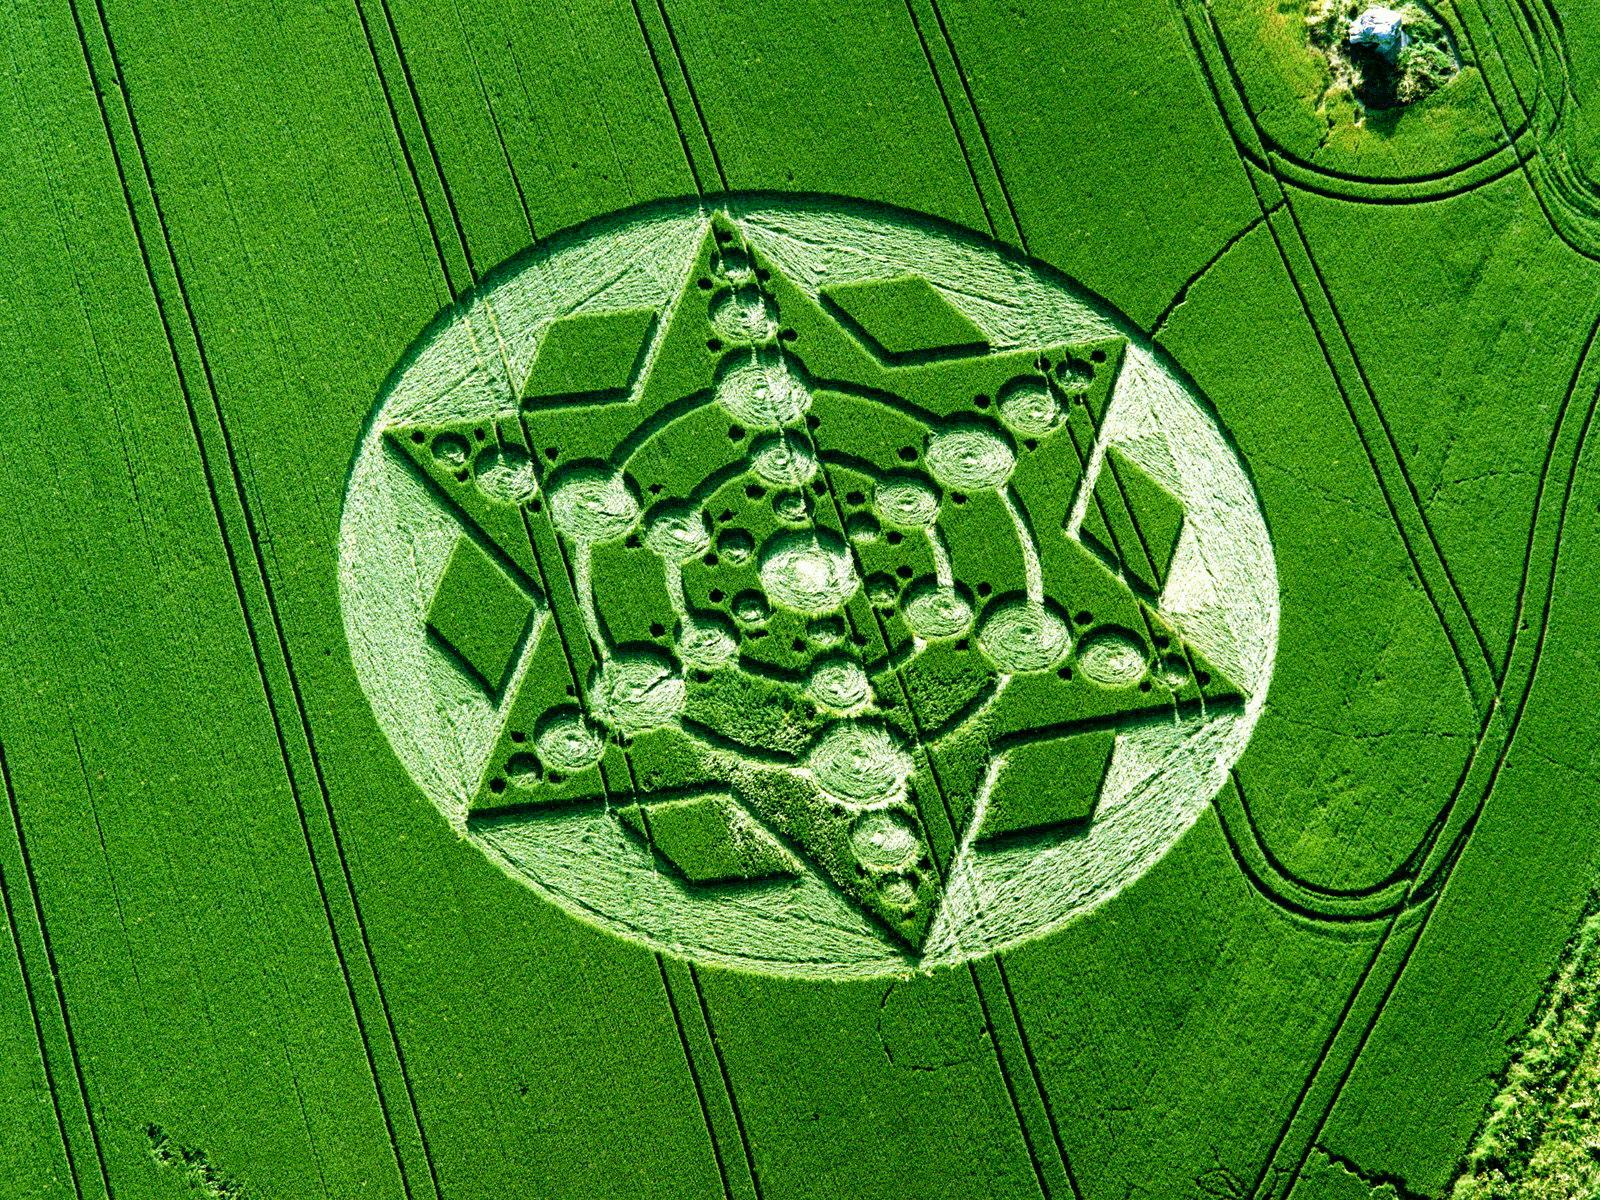 Crop Circles wallpapers HD quality